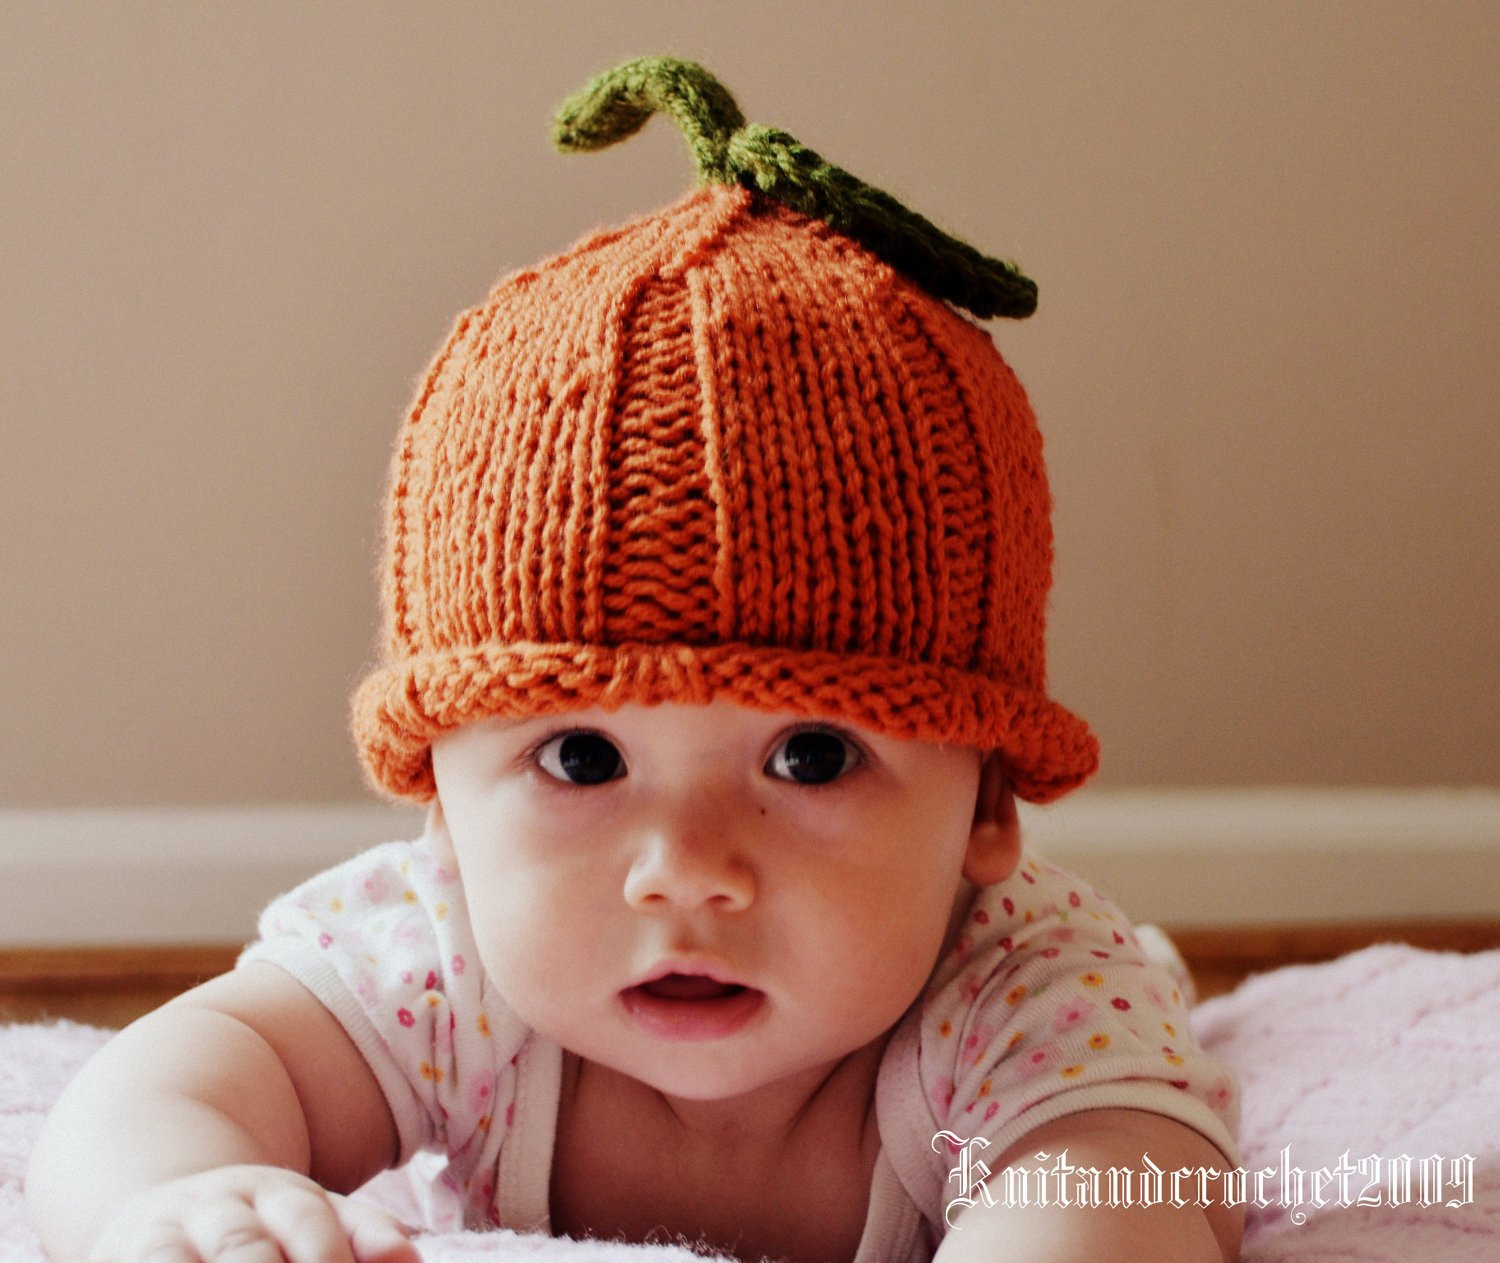 Newborn Baby Hats Lovely Pumpkin Hat Pixie Baby Infant Newborn Knit Handmade Cute Of Beautiful 48 Pictures Newborn Baby Hats